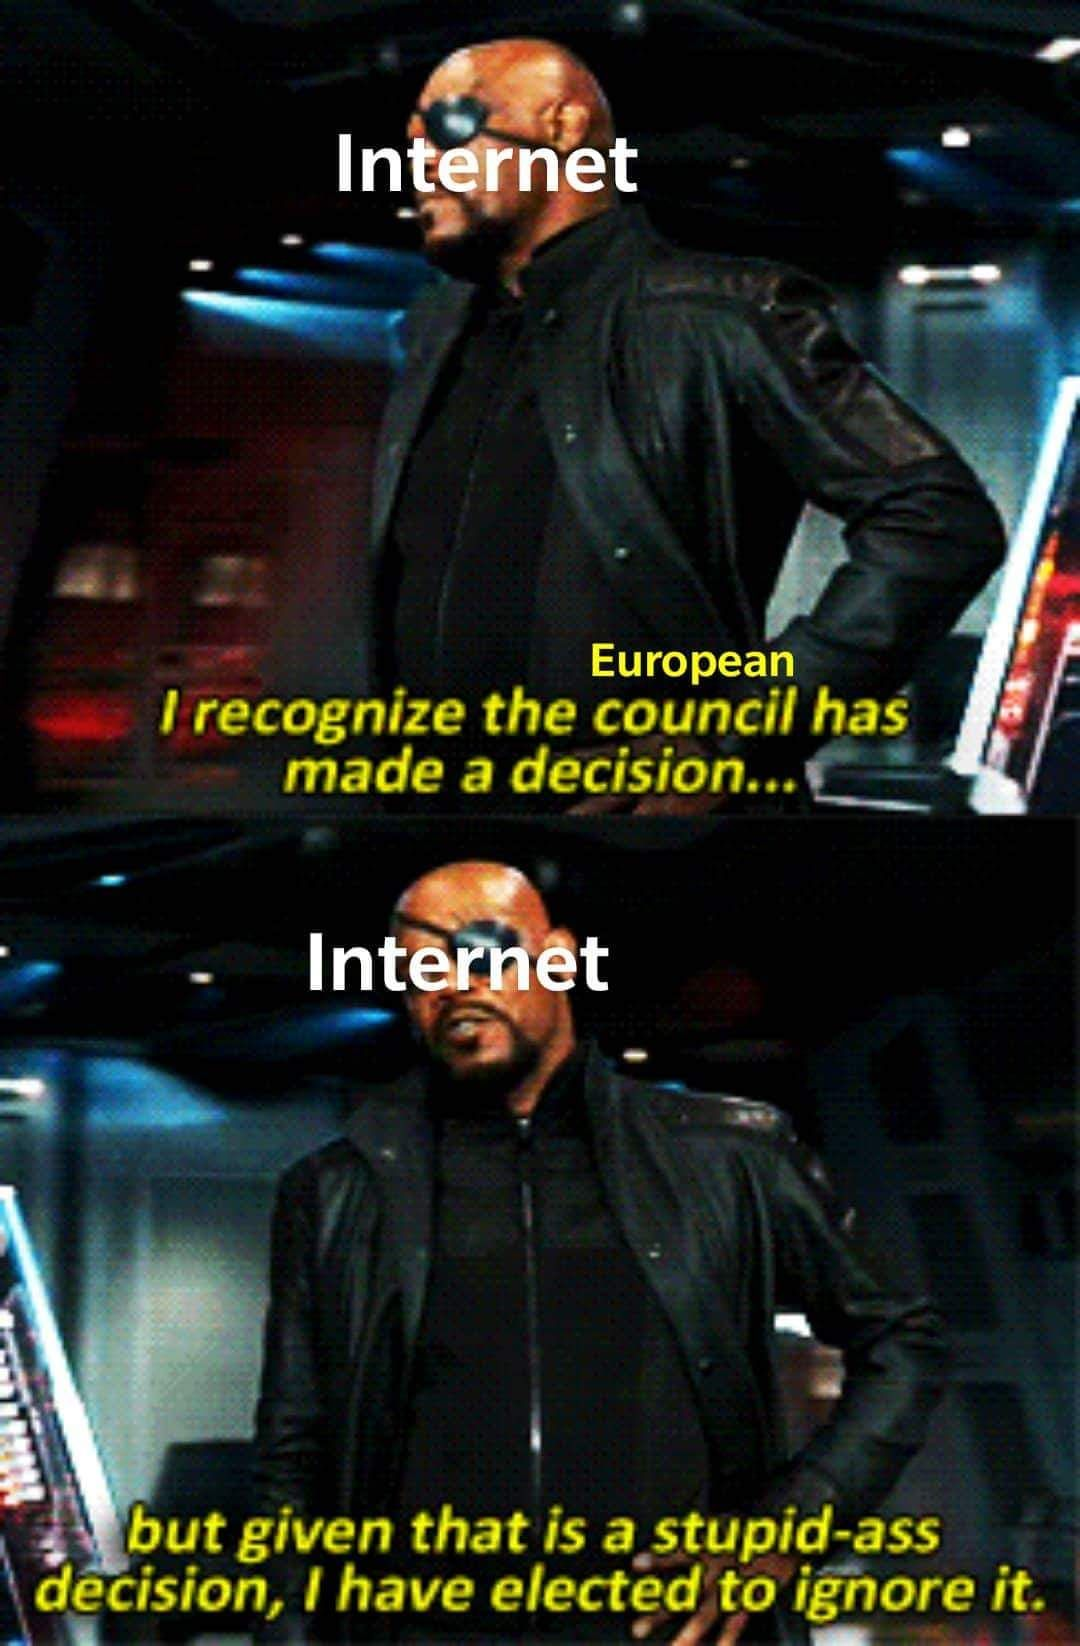 There's Fury over article 13